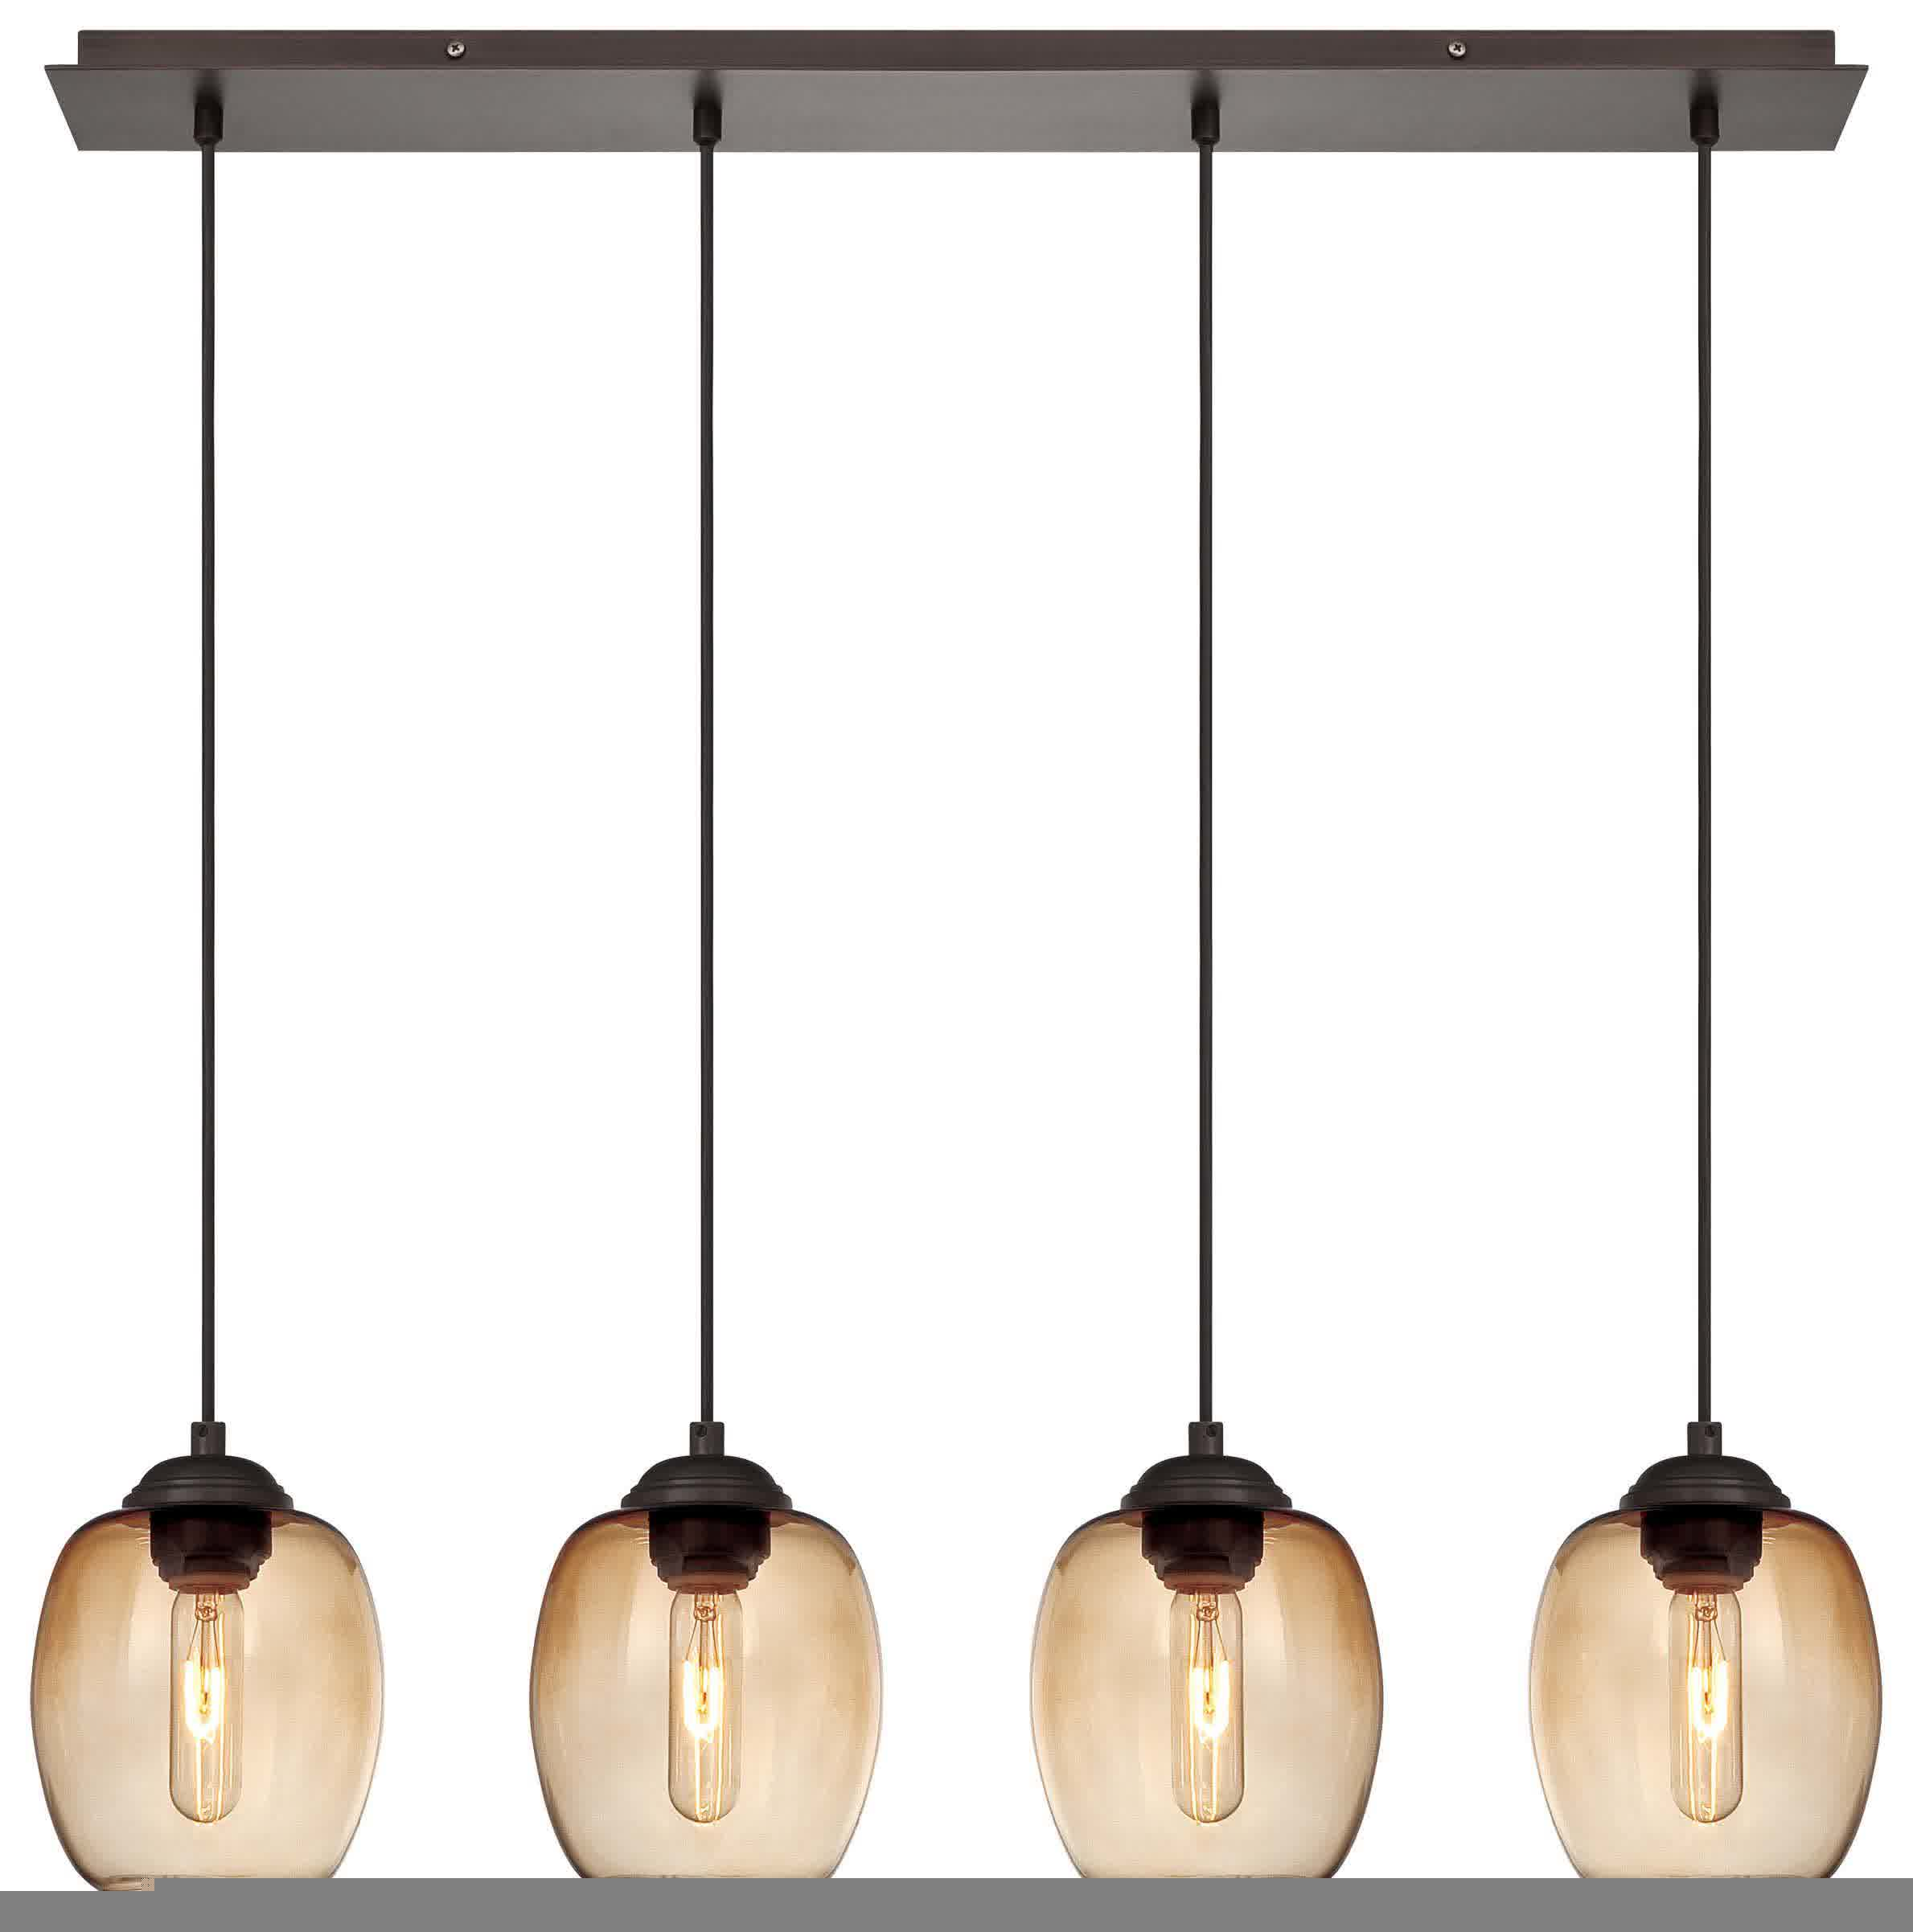 simple george kovacs lighting for kitchen island with four brown lamps